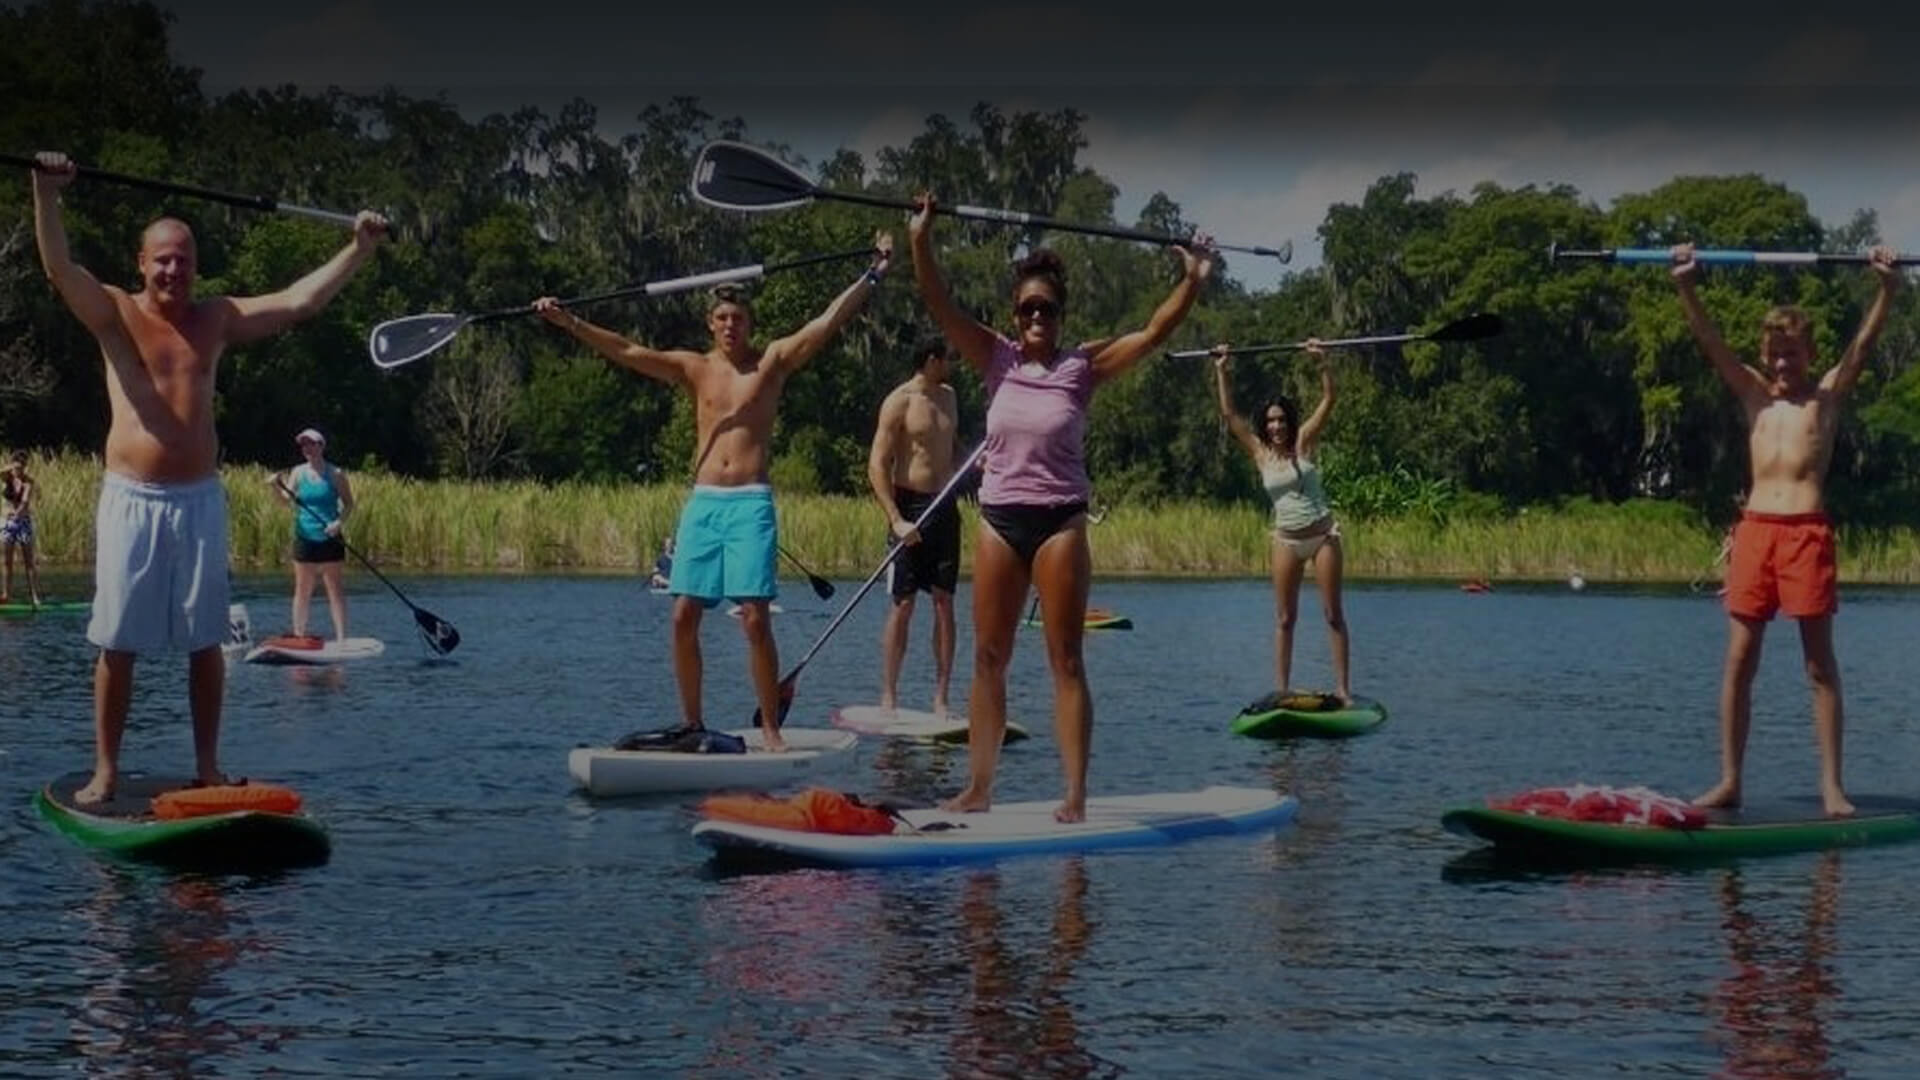 Beginners SUP Lessons, Friendly First Timers Orlando, FL